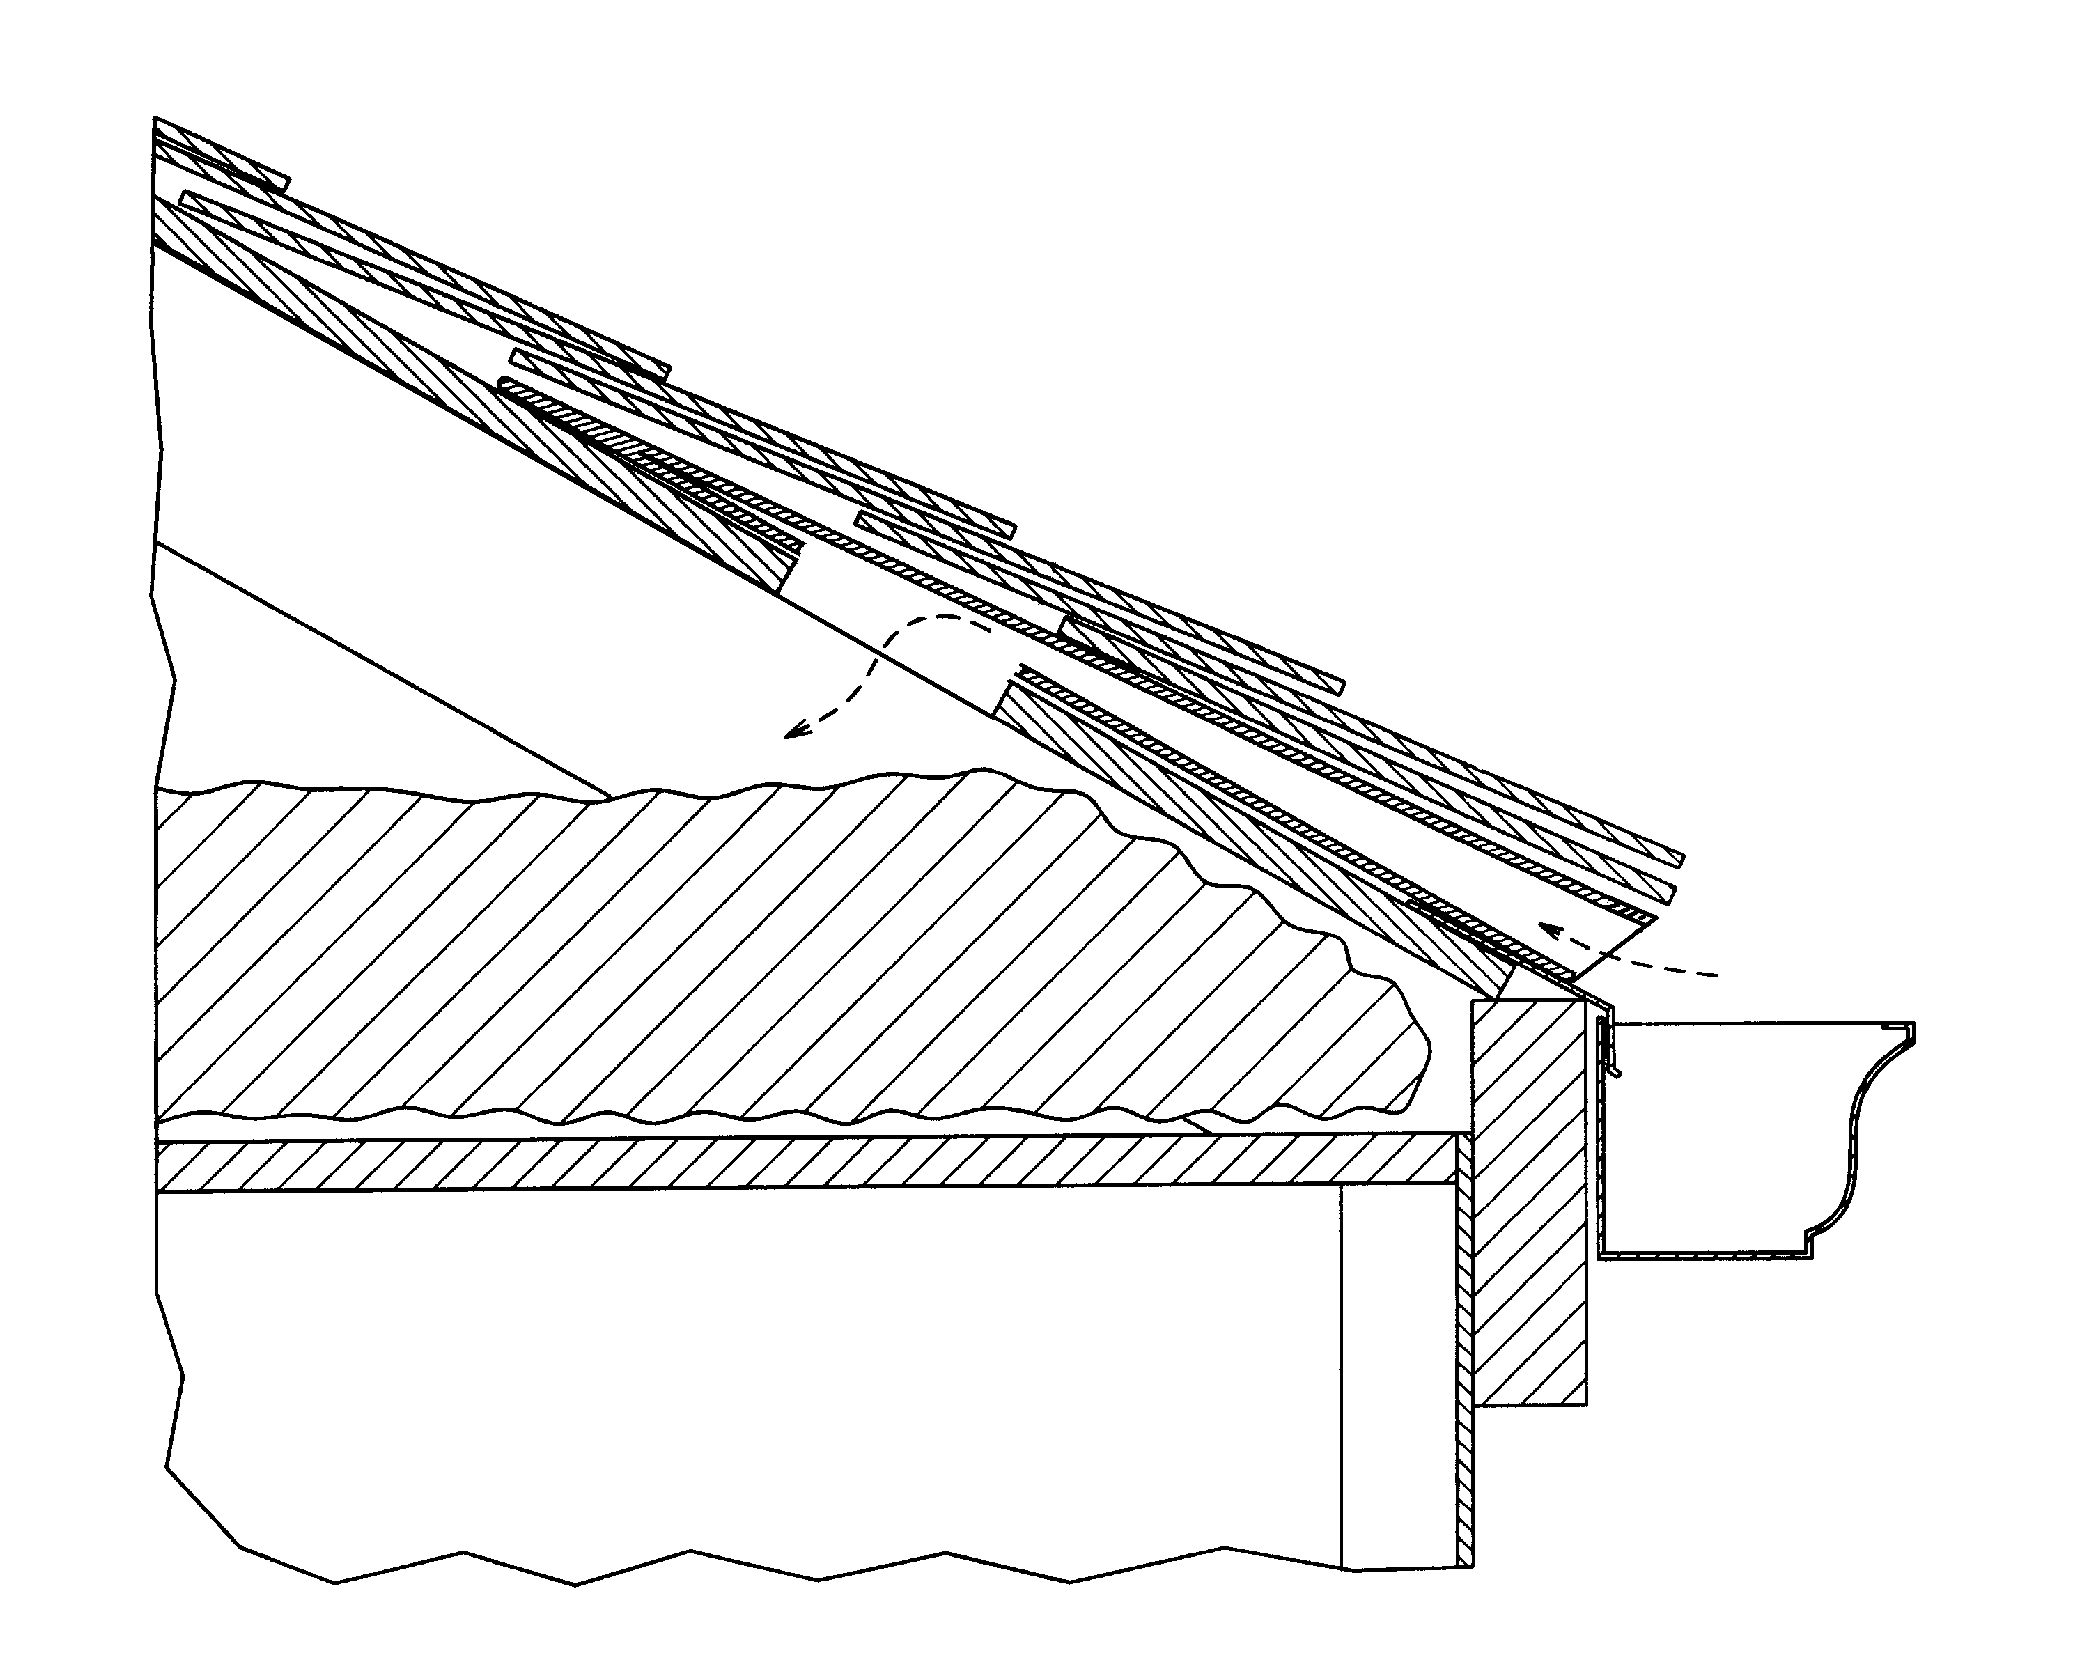 Attic Ventilation Without Soffit Vents Askaroofer throughout proportions 2089 X 1677